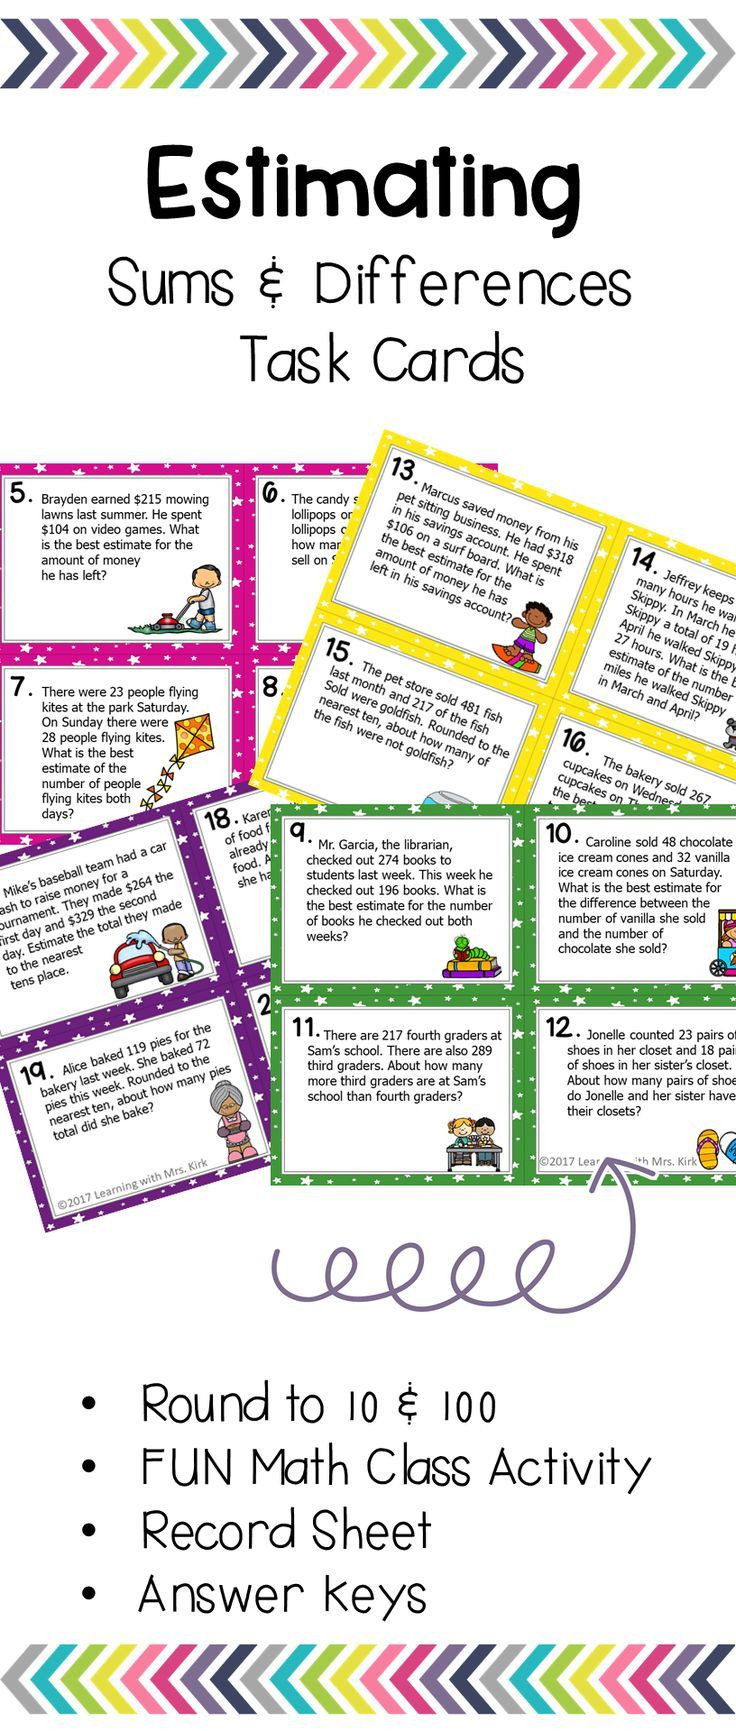 Estimating Word Problems 3rd Grade Estimating Sums and Differences Task Cards Word Problems